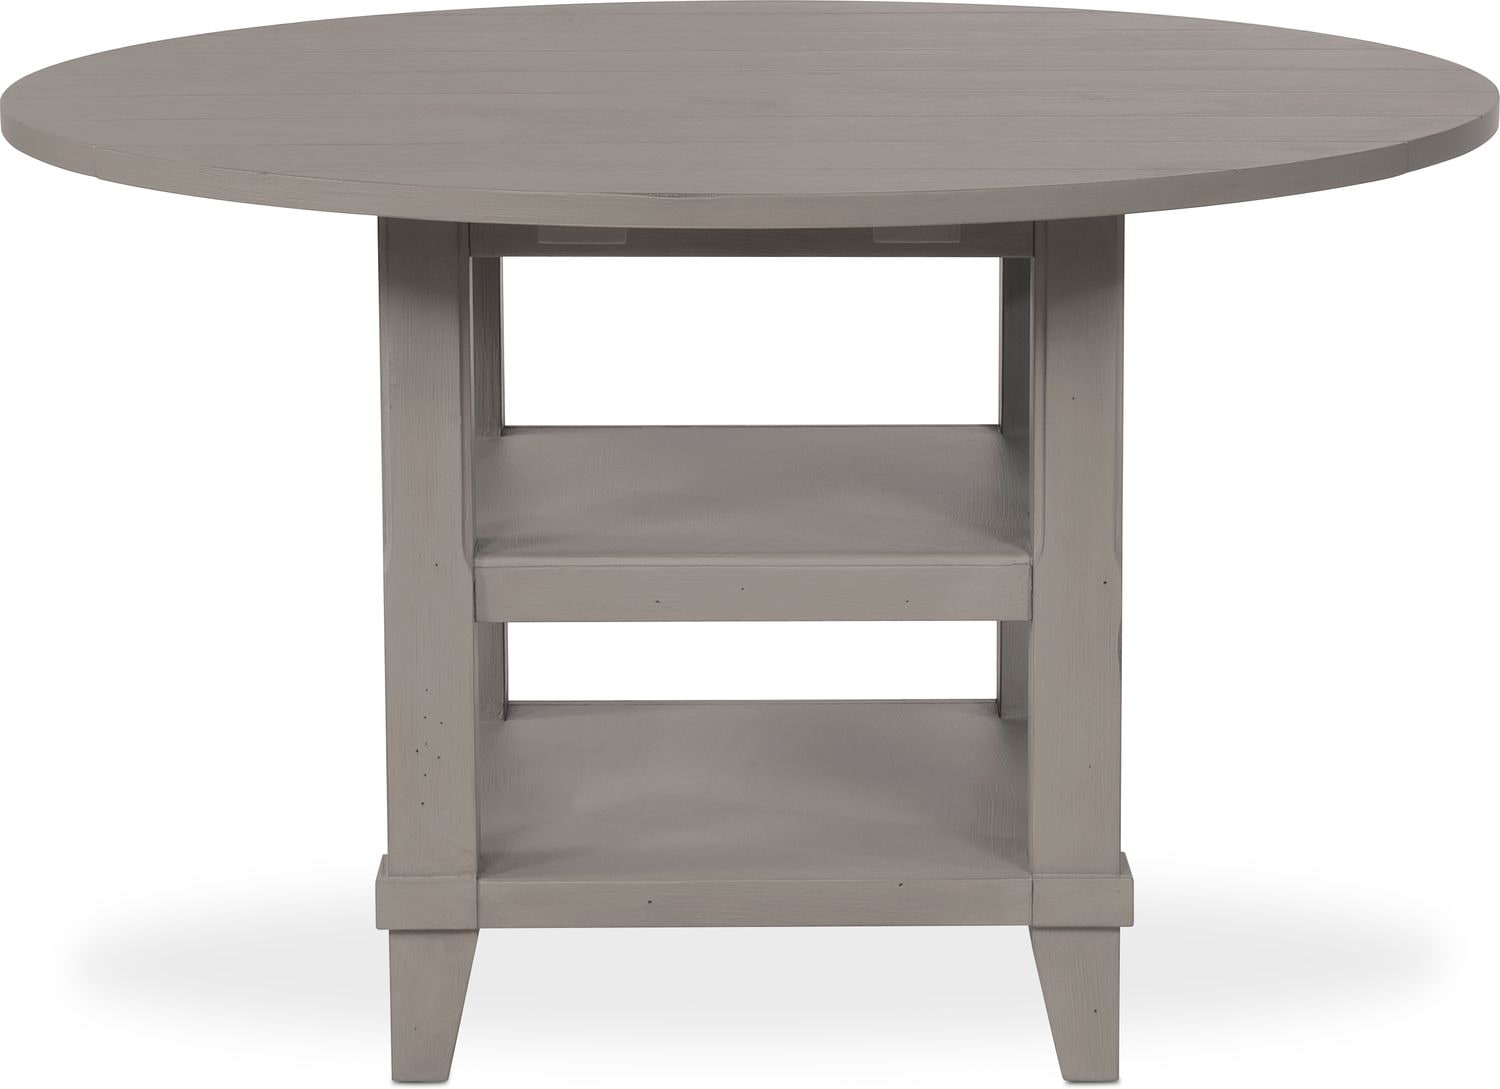 New Haven Round Drop Leaf Dining Table Gray Value City